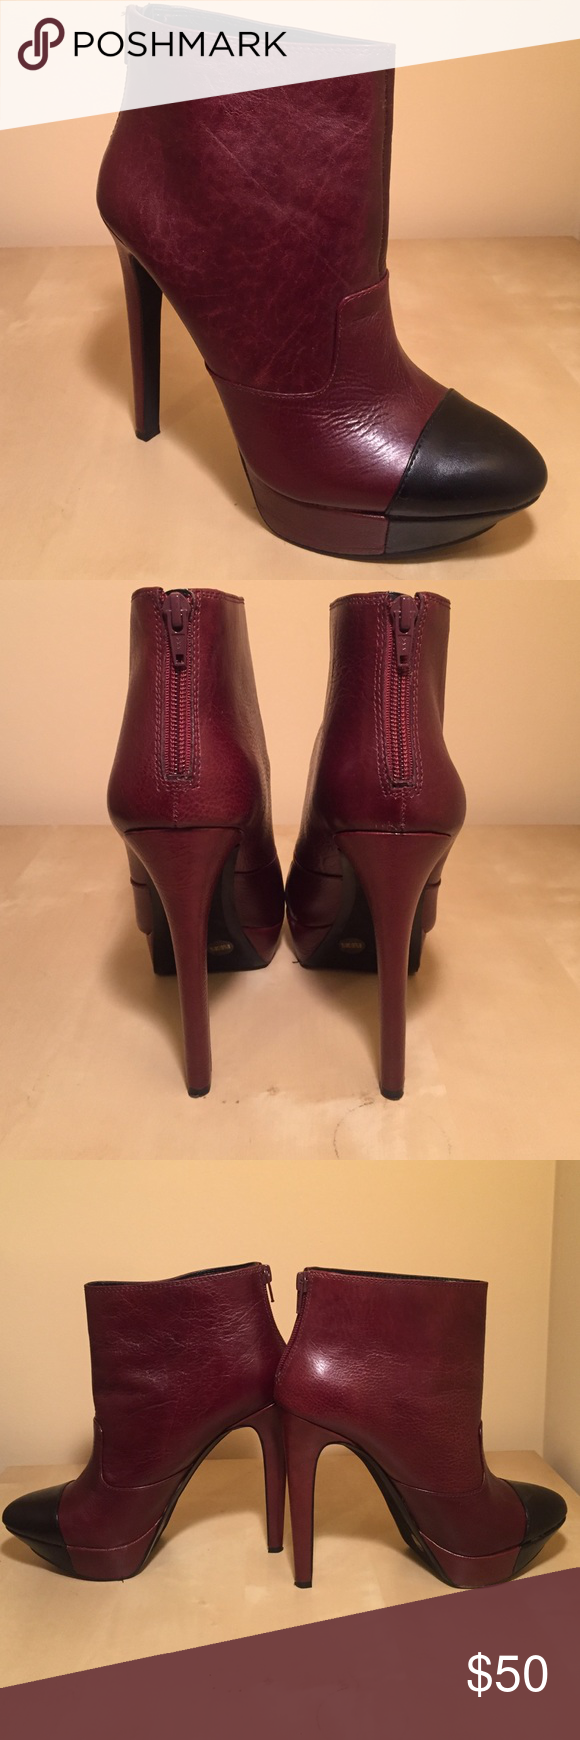 Jessica Simpson Ankle Boots JS-ESSAS. Color: Burgundy. Material: Belluci Leather. Gently used, worn 3 times. Jessica Simpson Shoes Heeled Boots